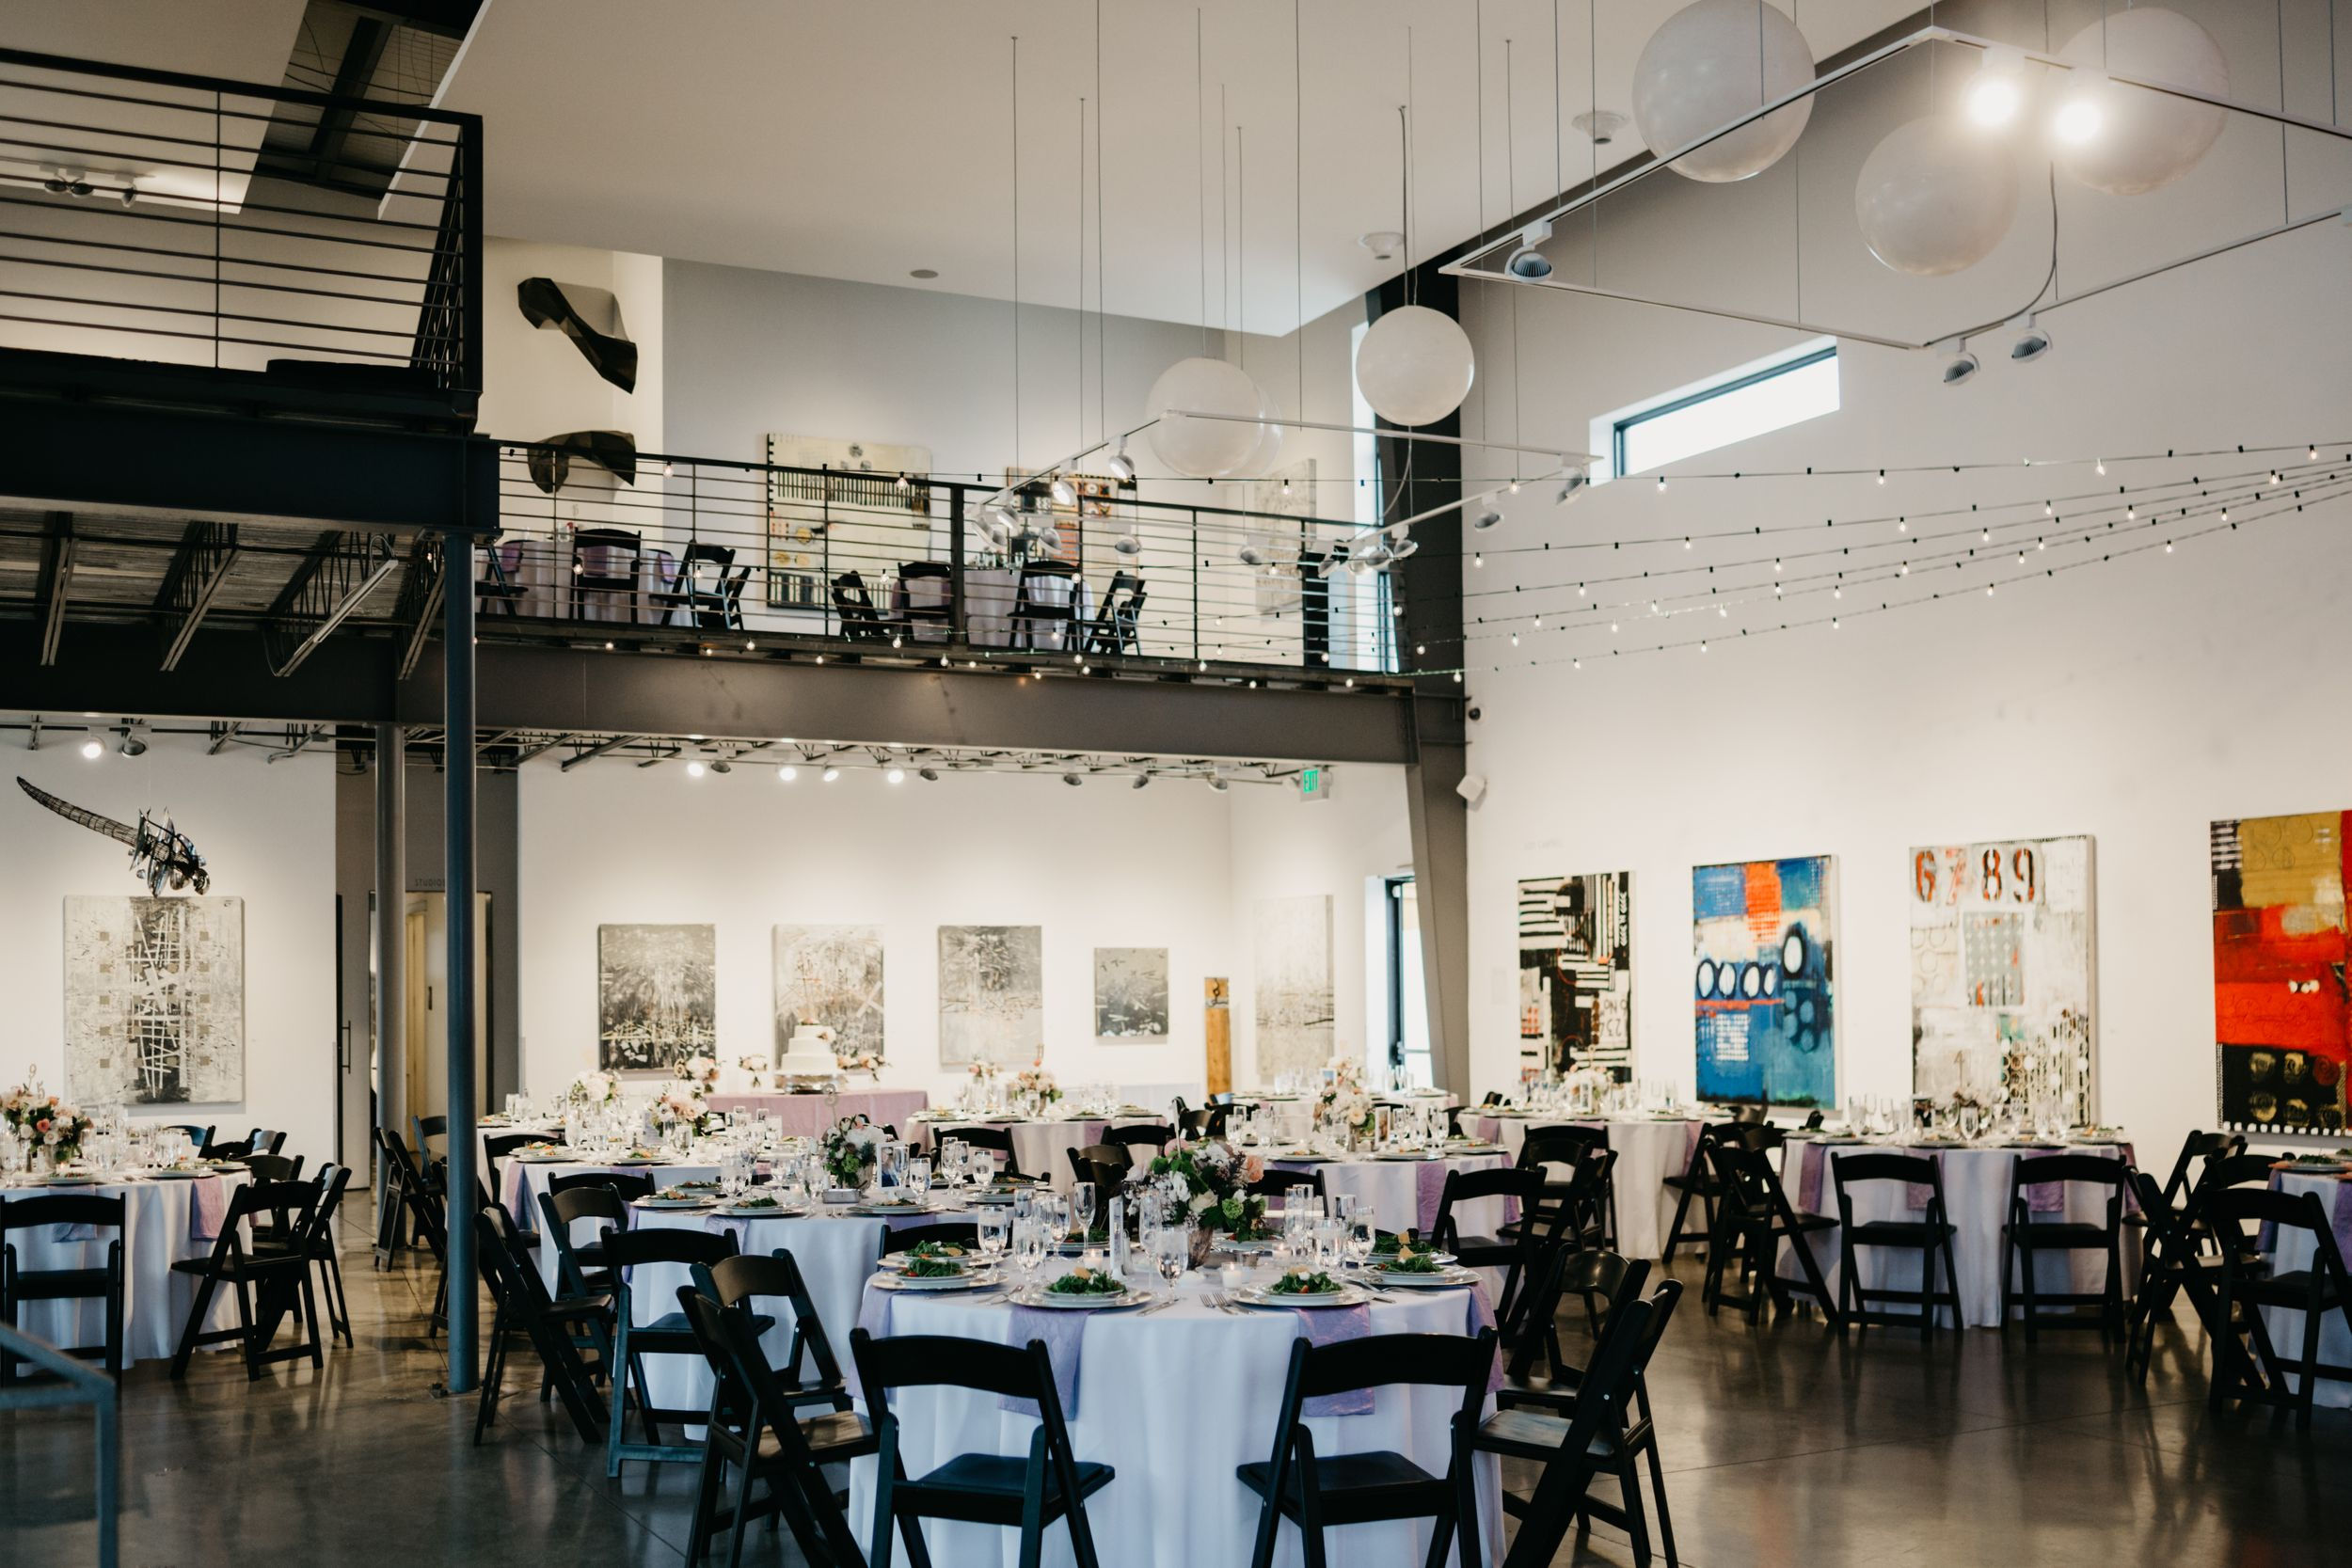 Wedding reception details at Space Gallery in Denver, CO